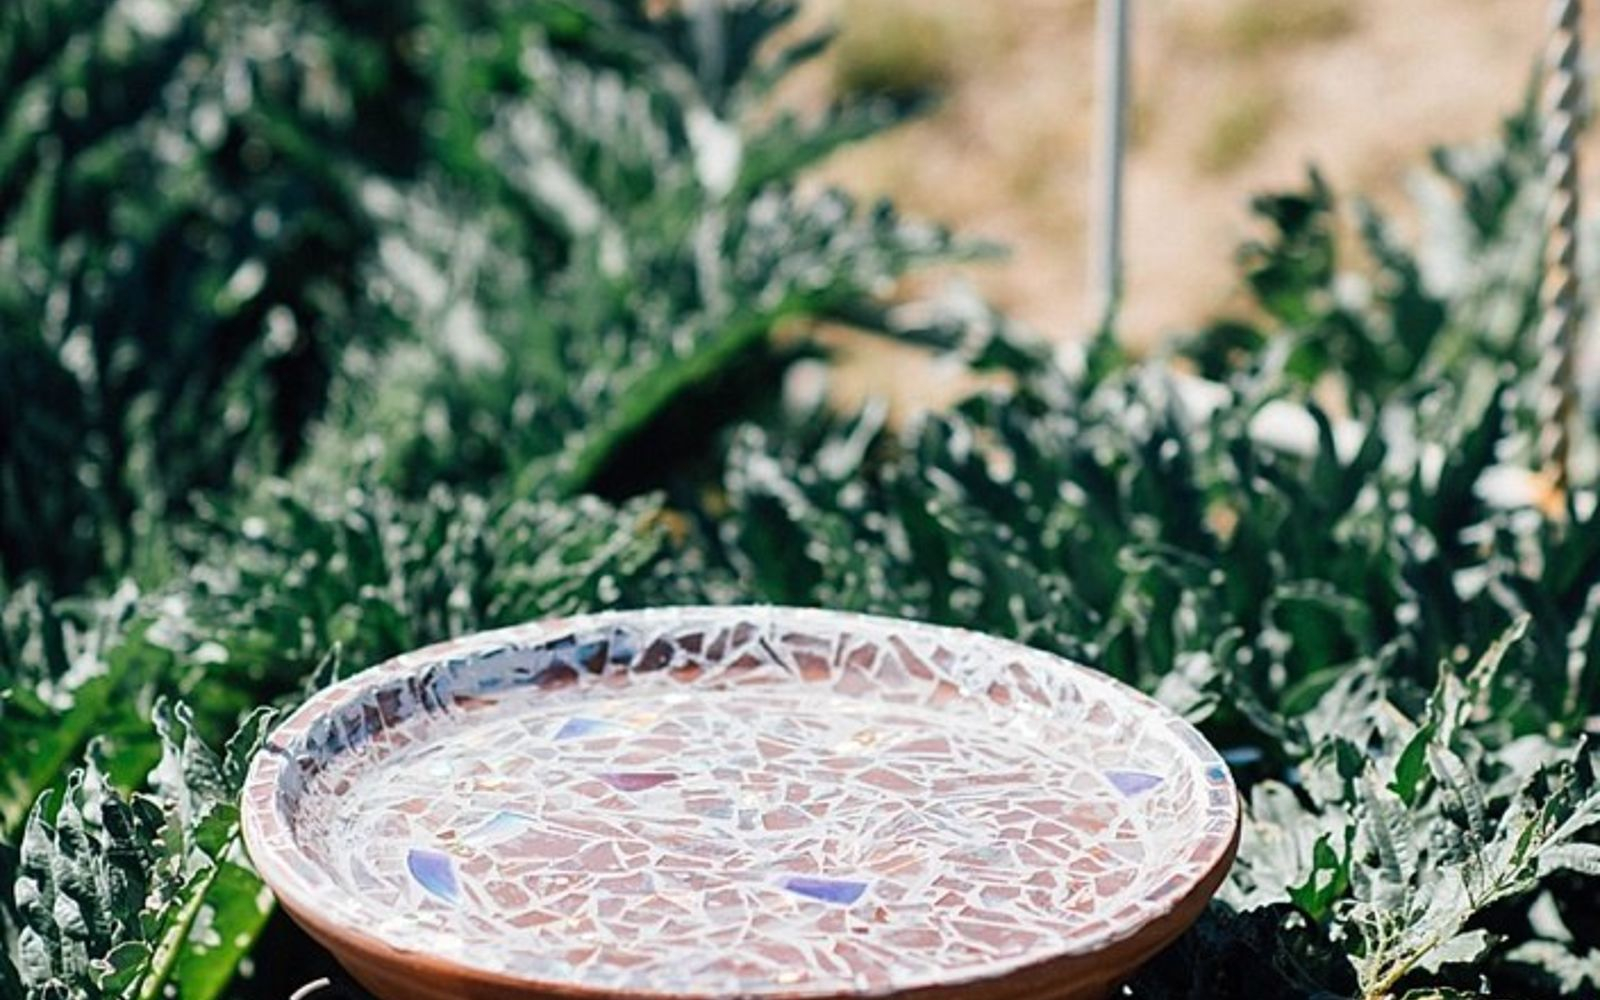 s 15 lovely repurposed items perfect for your garden, Break CDs Into A Shining Birdbath